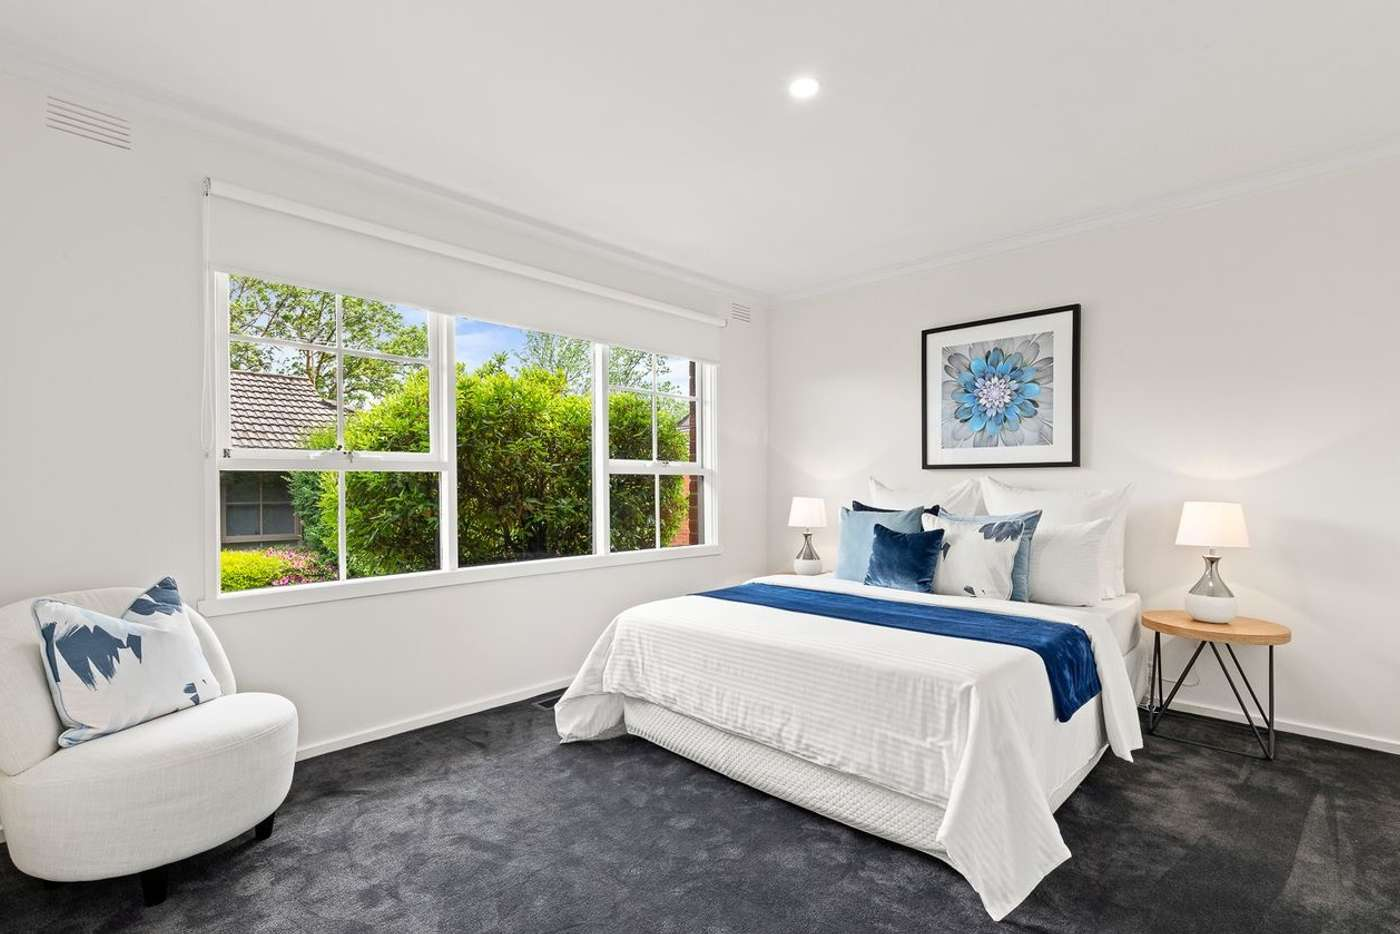 Fifth view of Homely unit listing, 2/29 Arlington Street, Ringwood VIC 3134